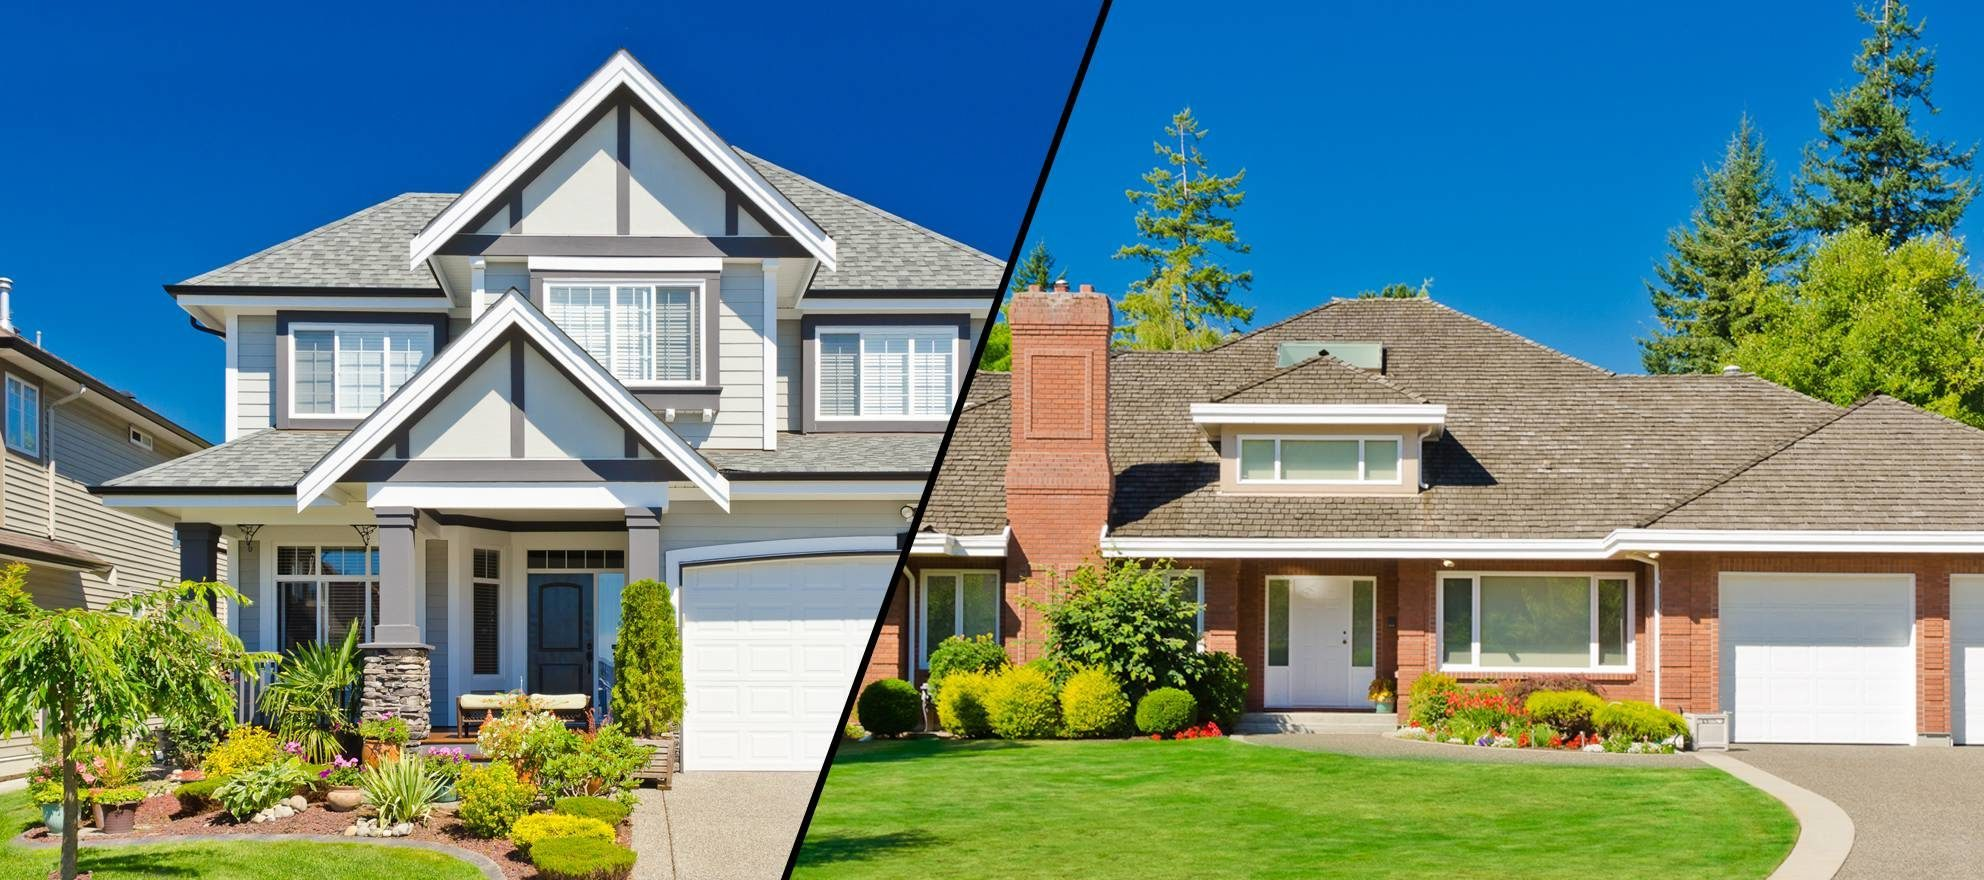 the importance of viewing comparable homes